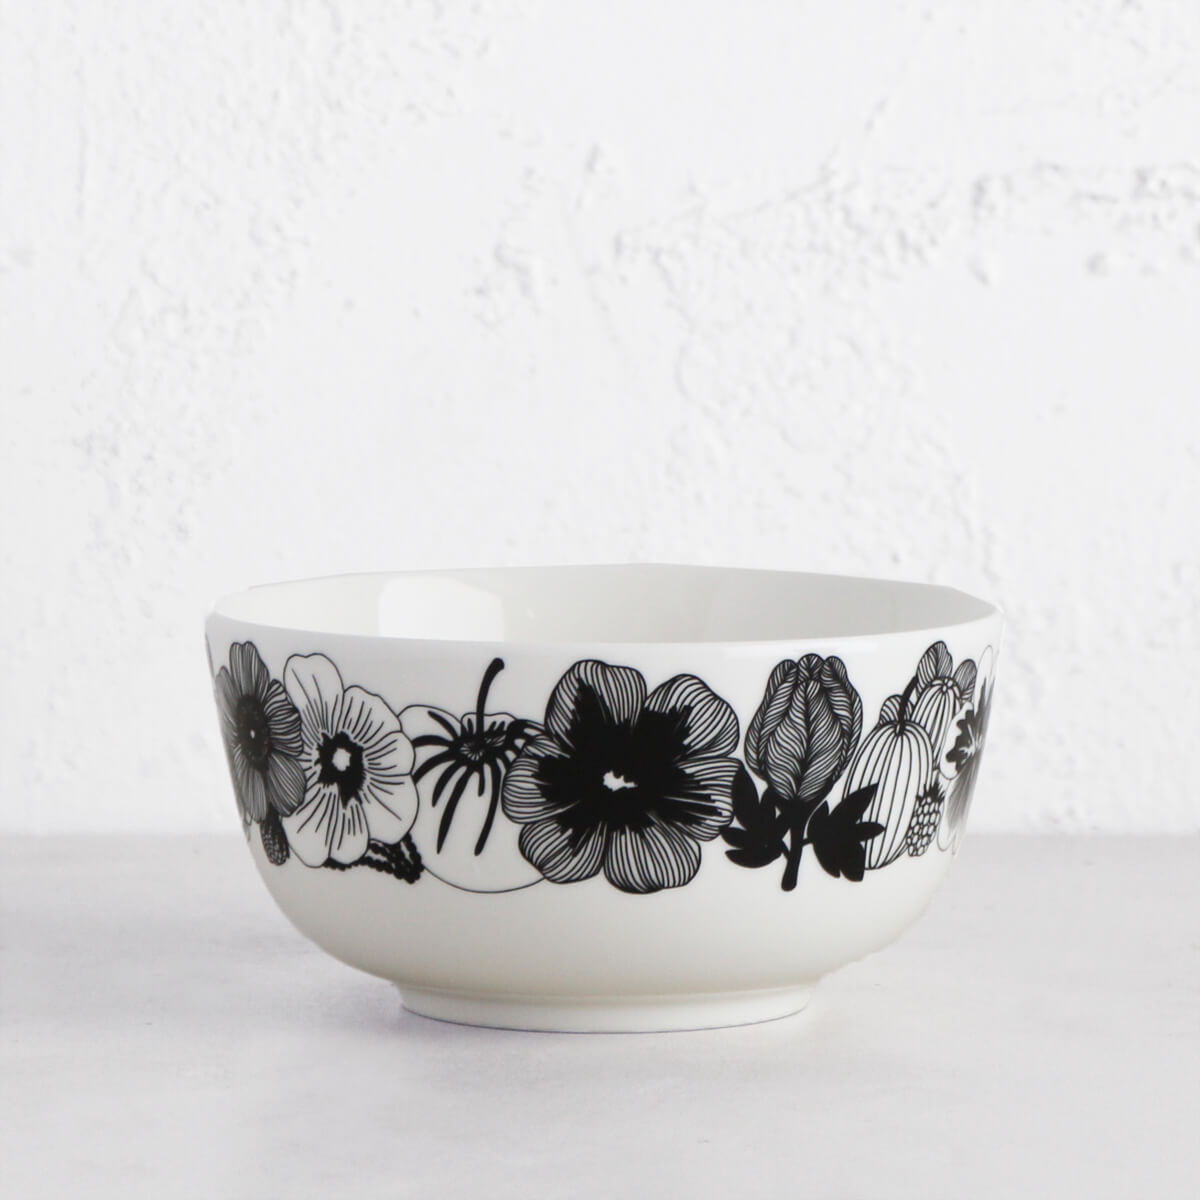 MARIMEKKO | OIVA SIIRTOLAPUUTARHA SERVING DISH .9 L | BLACK + WHITE SALAD BOWL